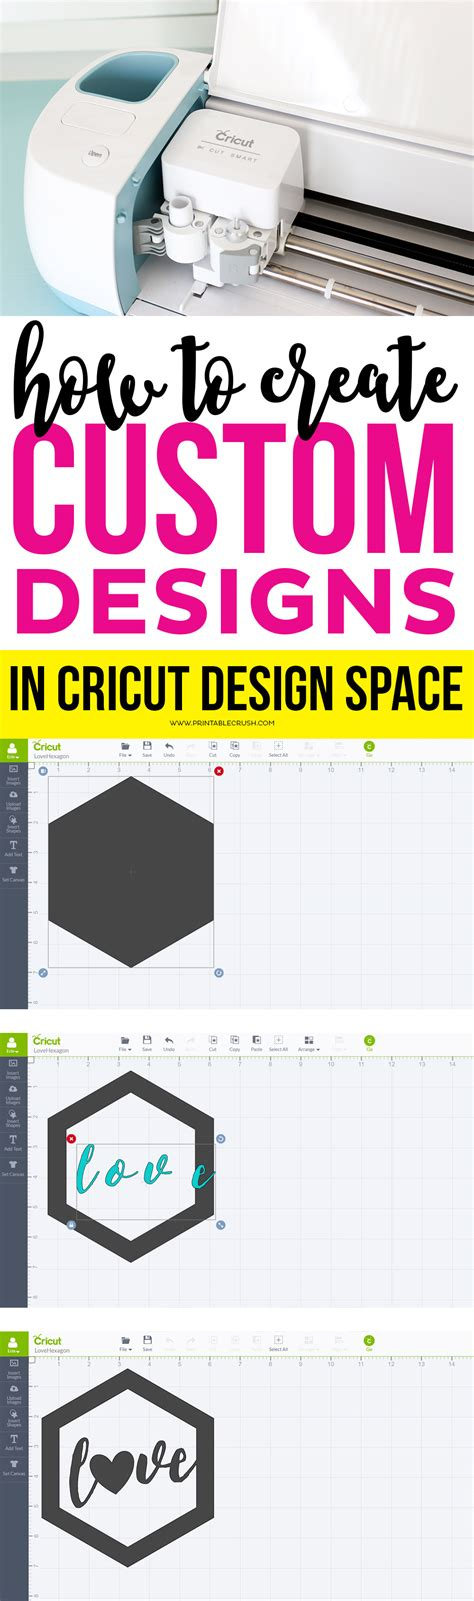 design and make how to create custom designs in cricut design space